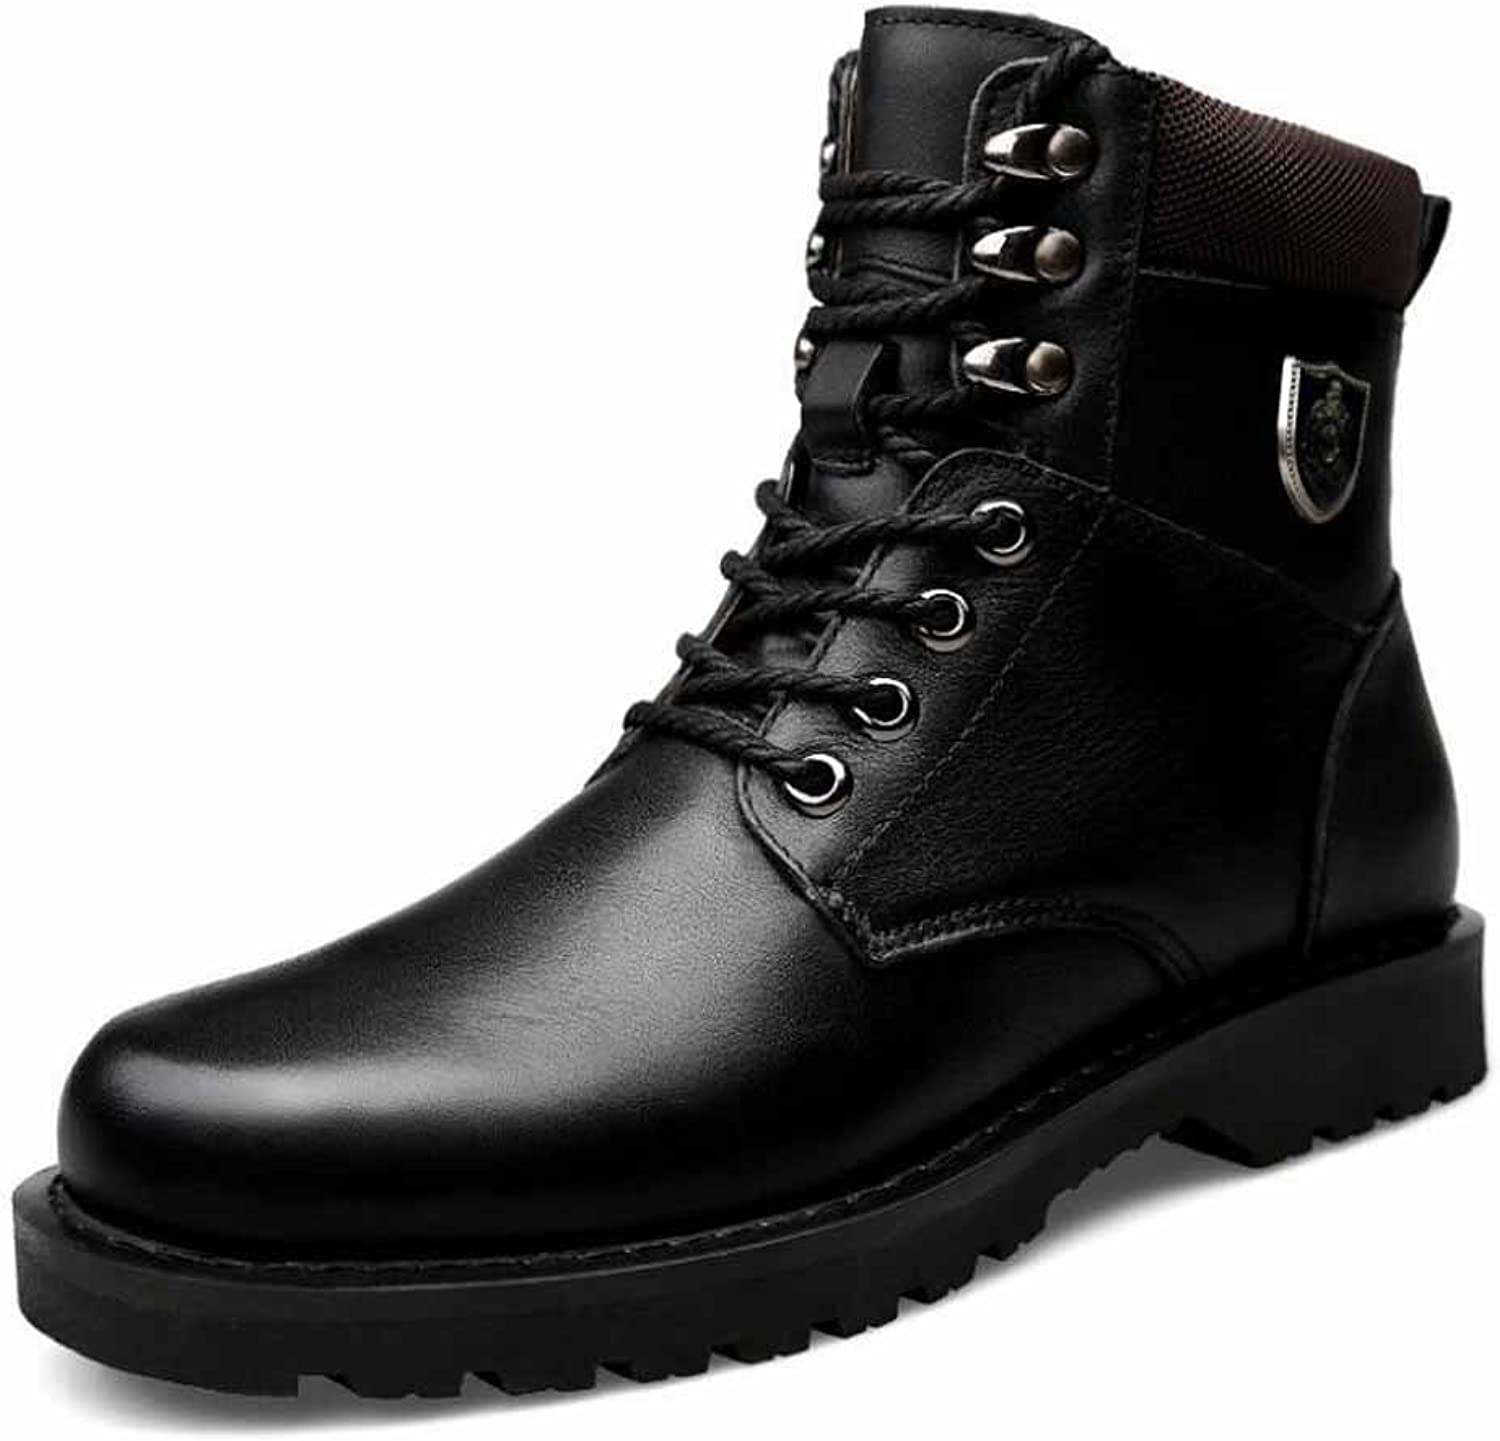 Men Outdoor Martin Boots Winter Warm Fur Lined Walking Boots High Top Fashion Work Boots Large Size